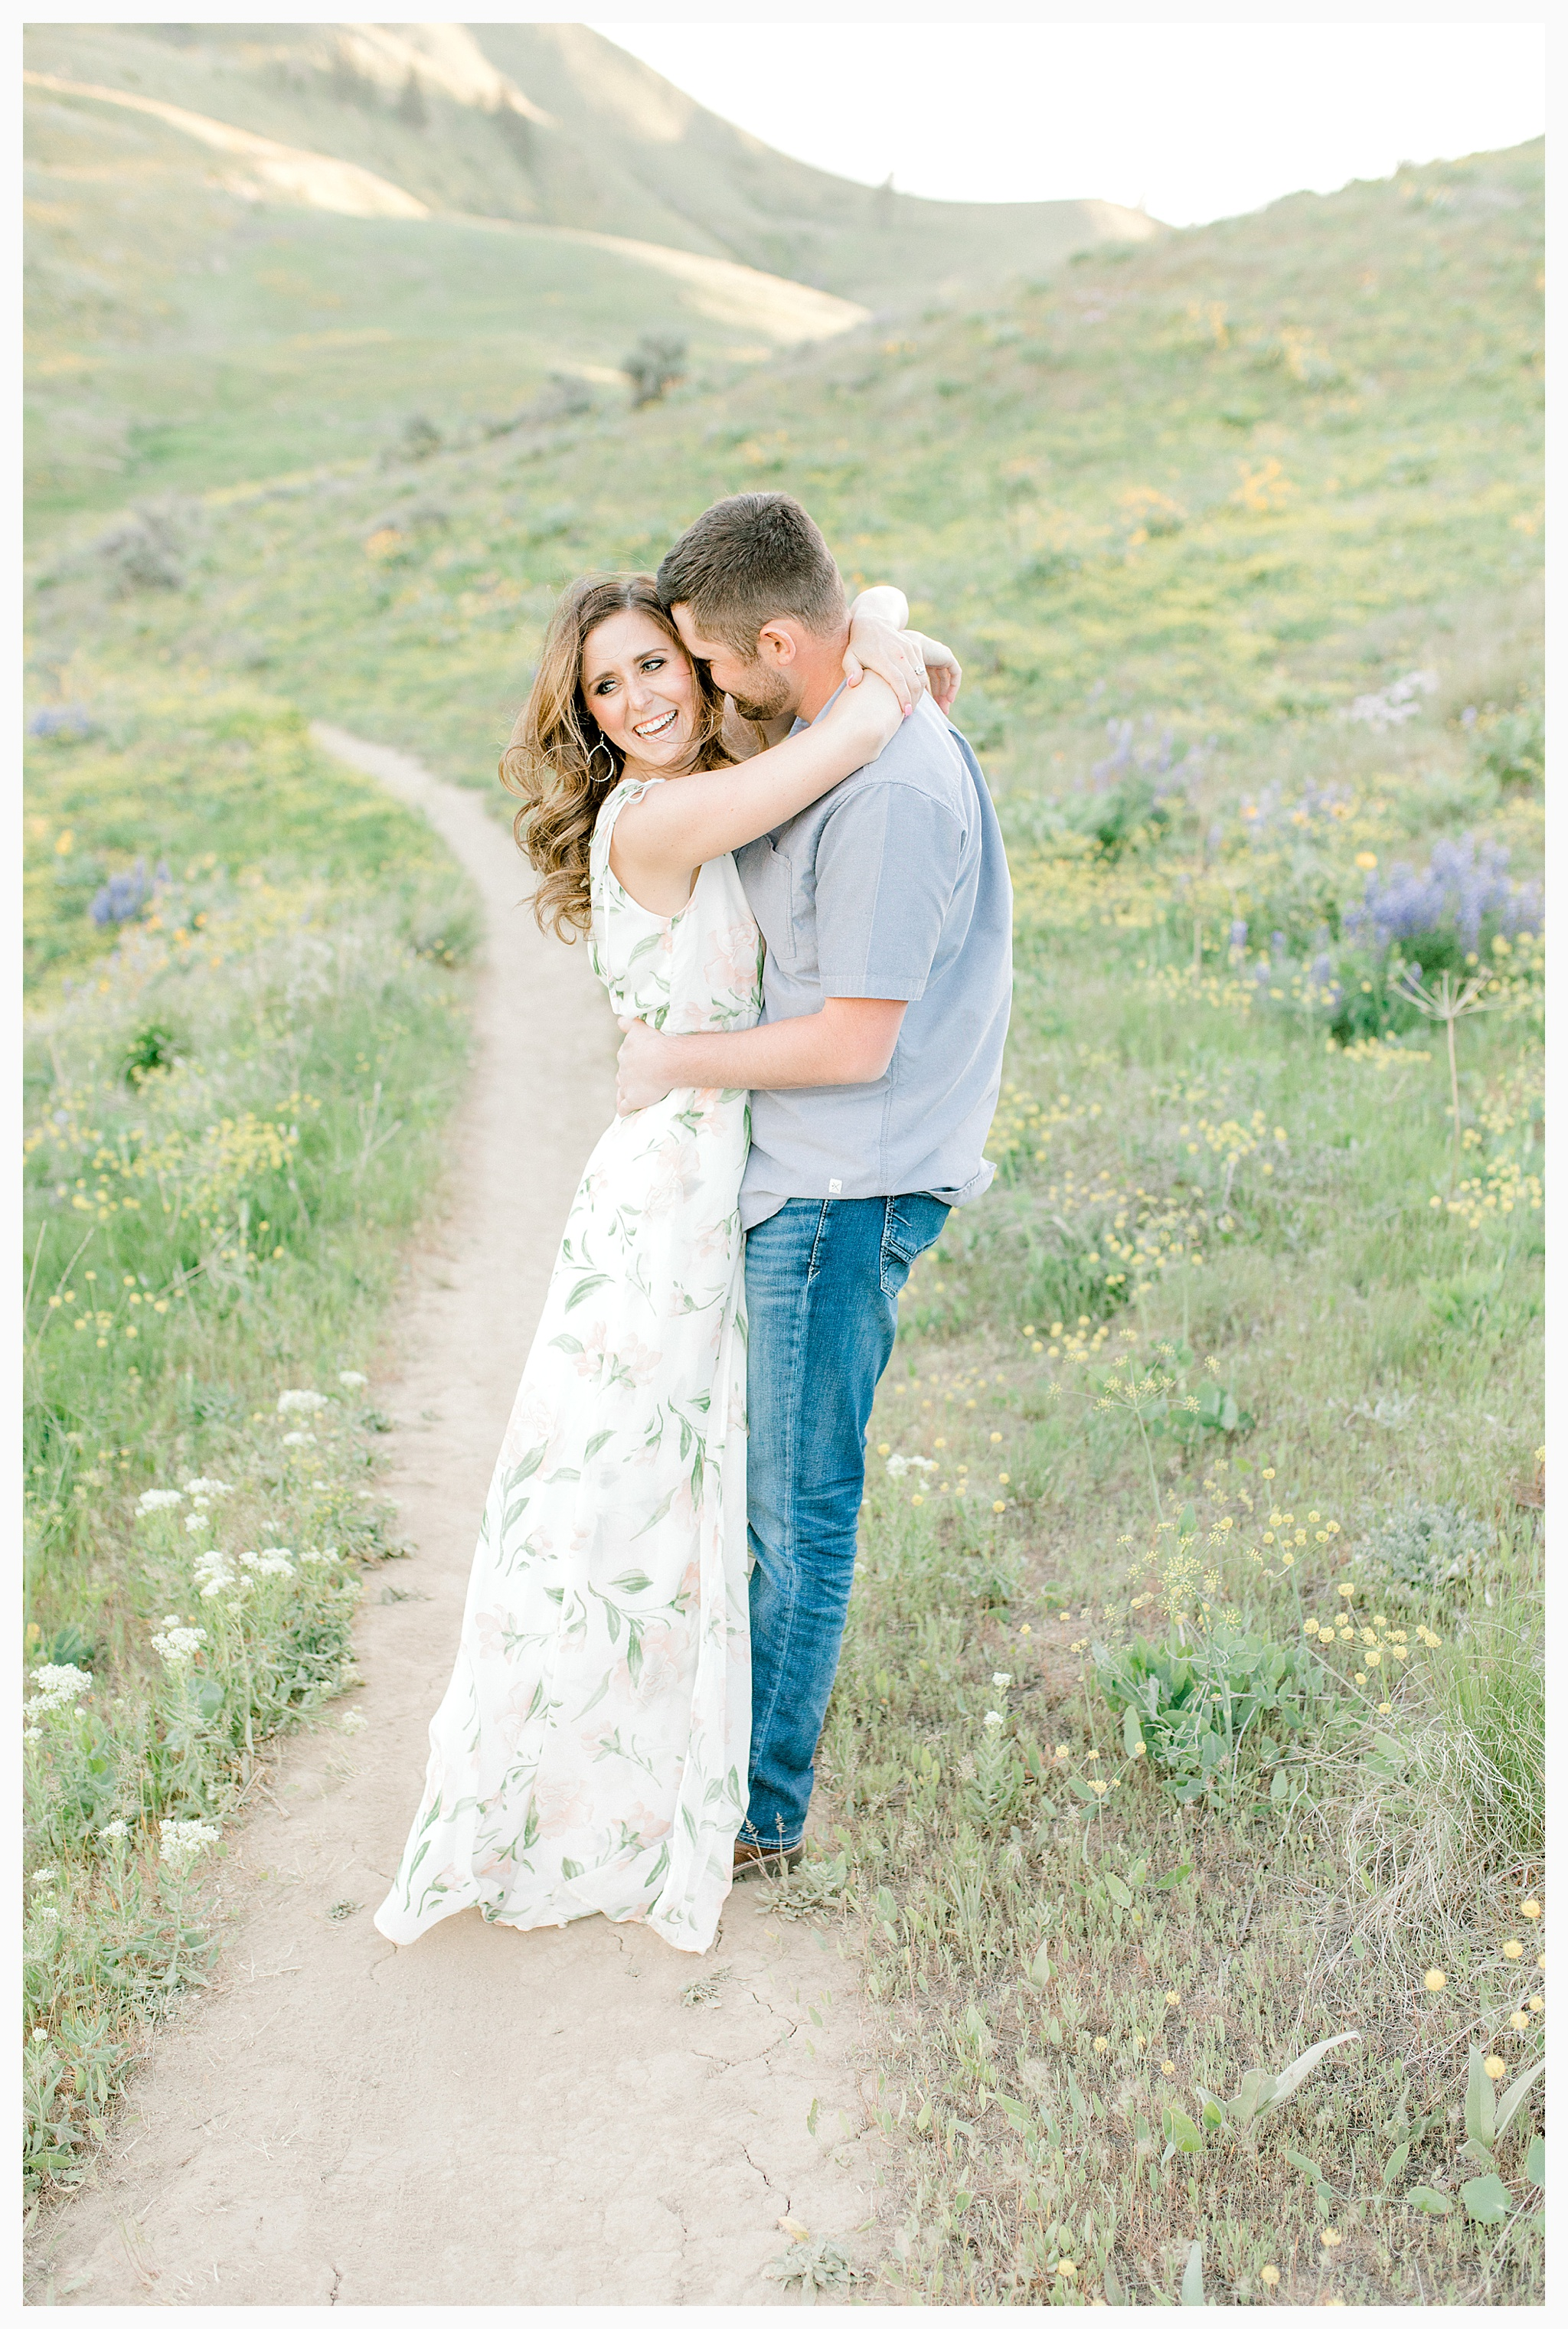 Engagement session amongst the wildflowers in Wenatchee, Washington | Engagement Session Outfit Inspiration for Wedding Photography with Emma Rose Company | Light and Airy PNW Photographer, Seattle Bride_0010.jpg